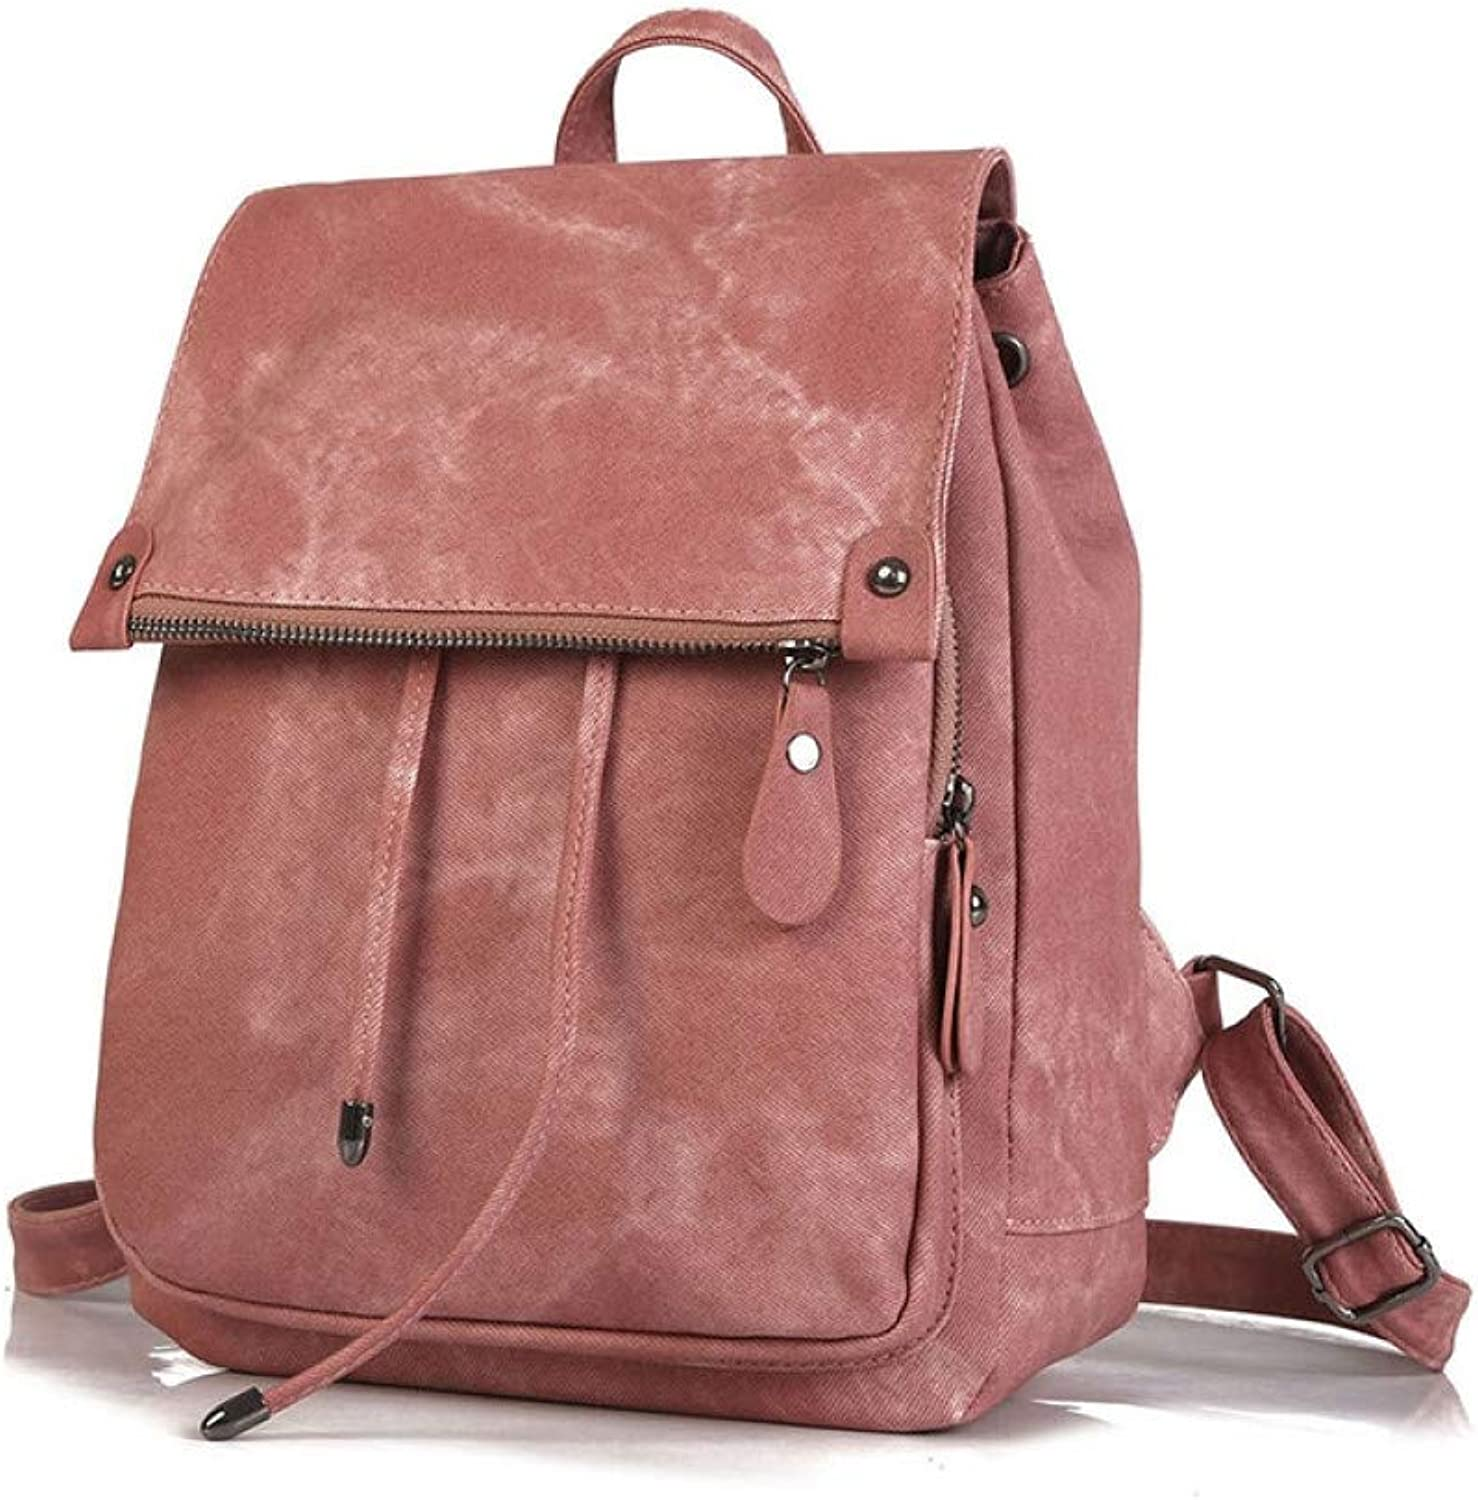 VITANB Candy color Style Rucksack for Teenage Girls Fashion Pu Leather Backpack Women Backpack